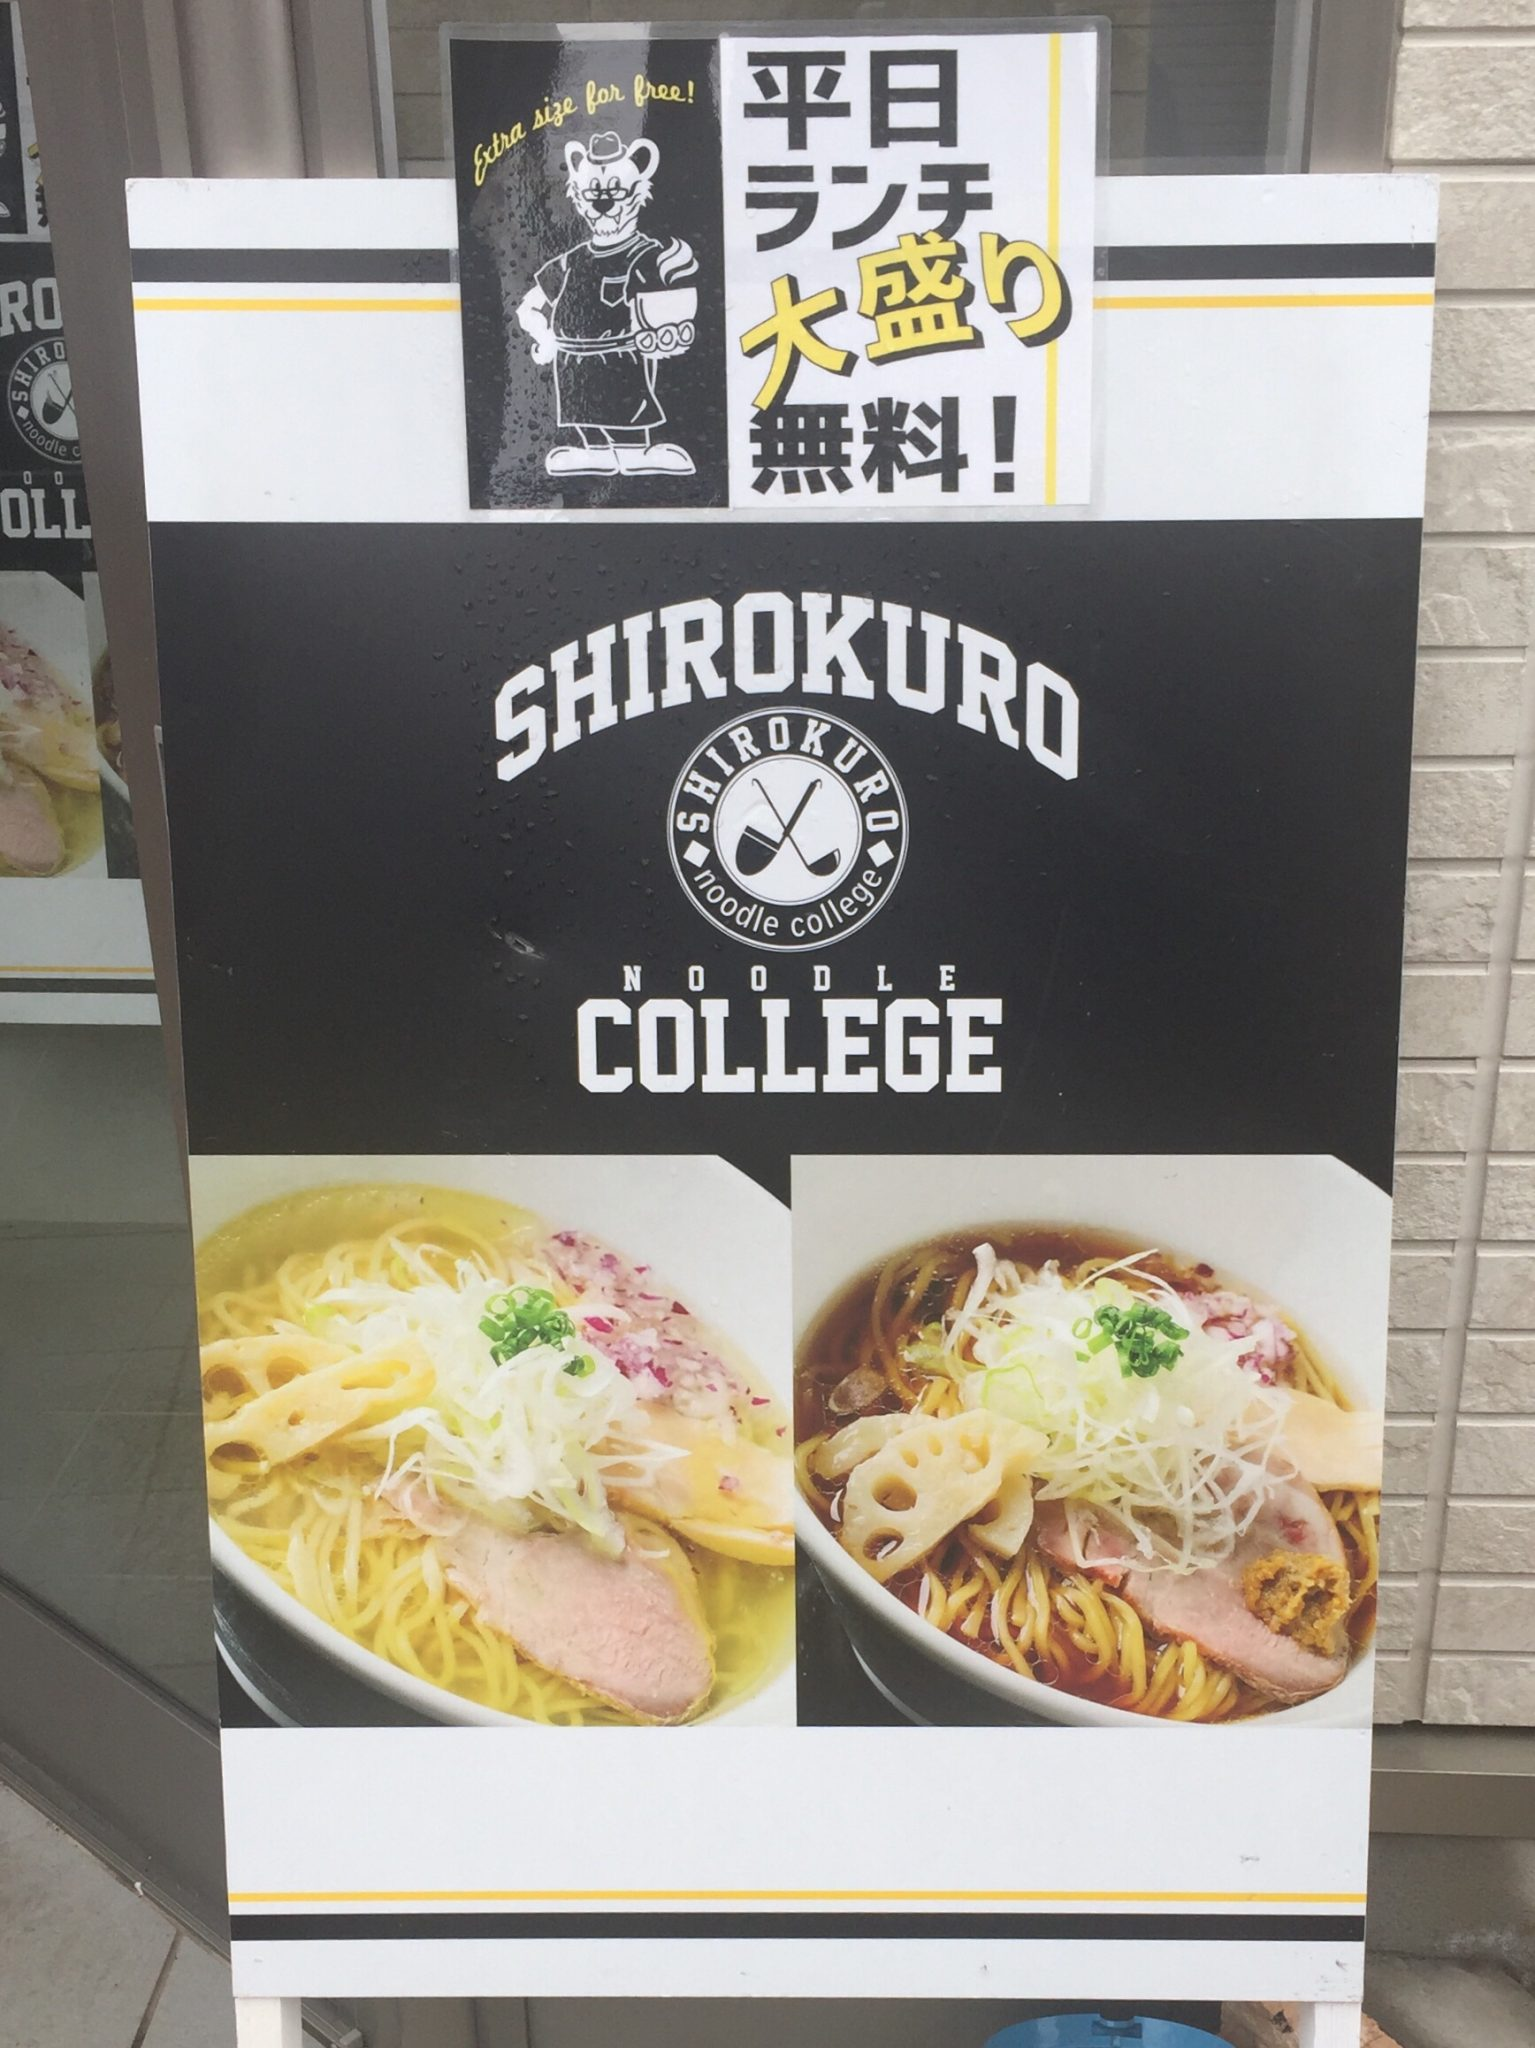 Noodle college SHIROKURO(シロクロ) 看板